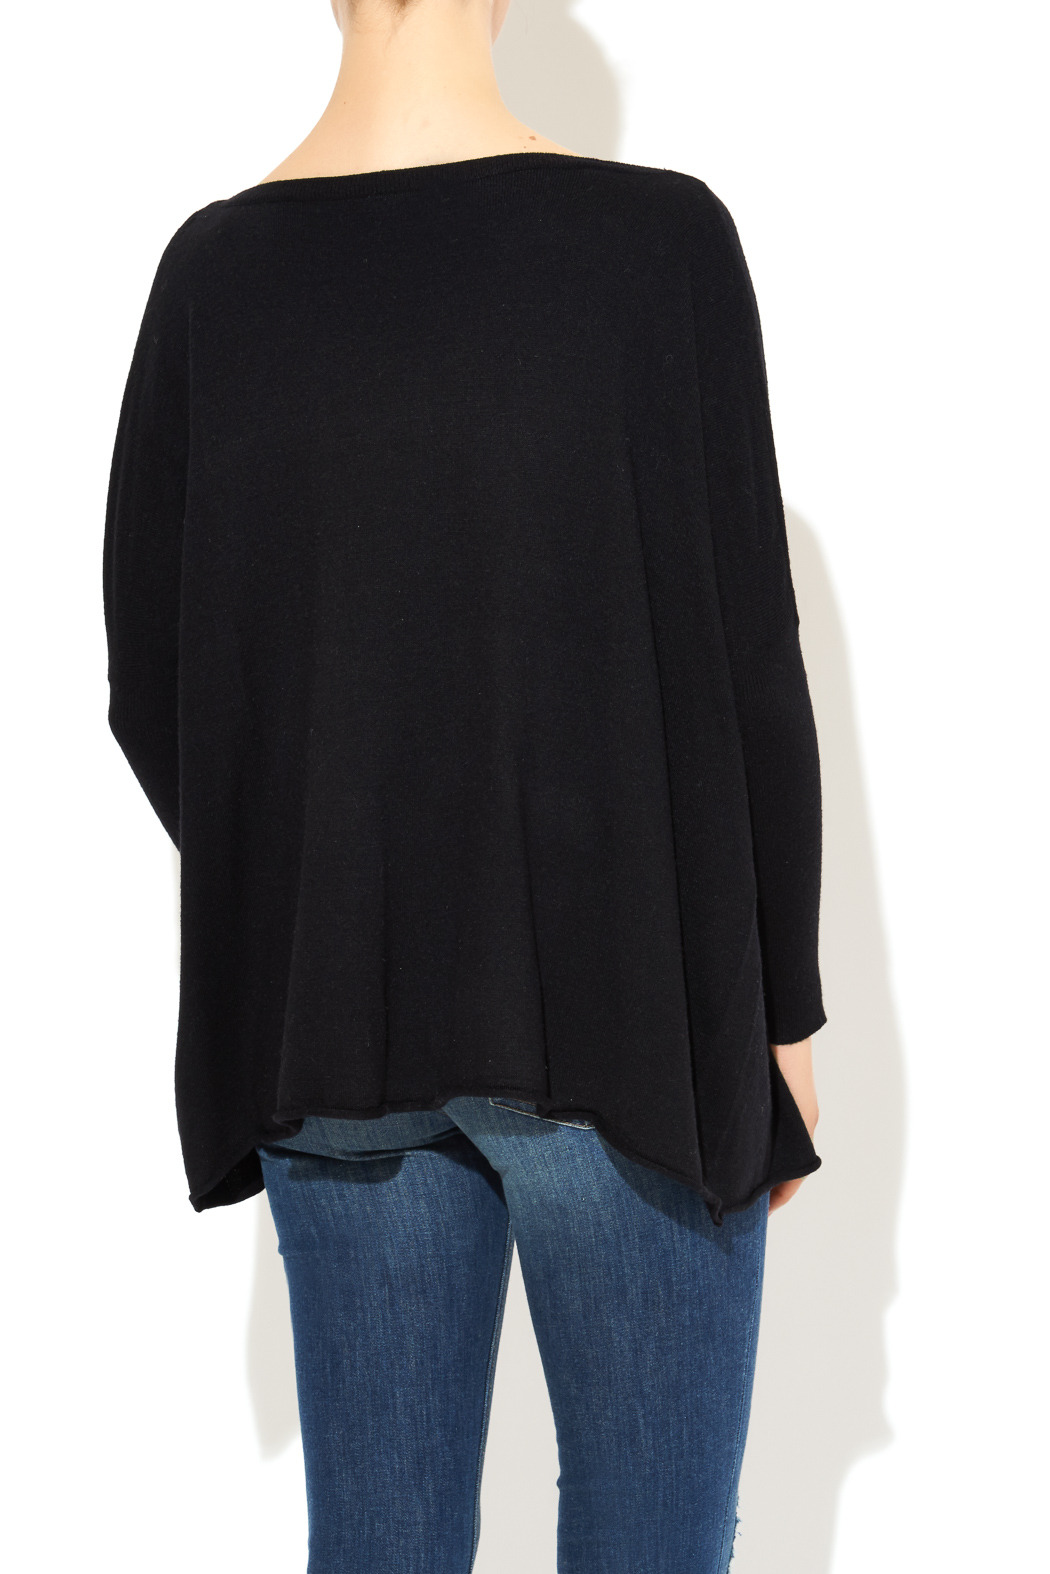 InStyle Black Dolman Sweater - Back Cropped Image